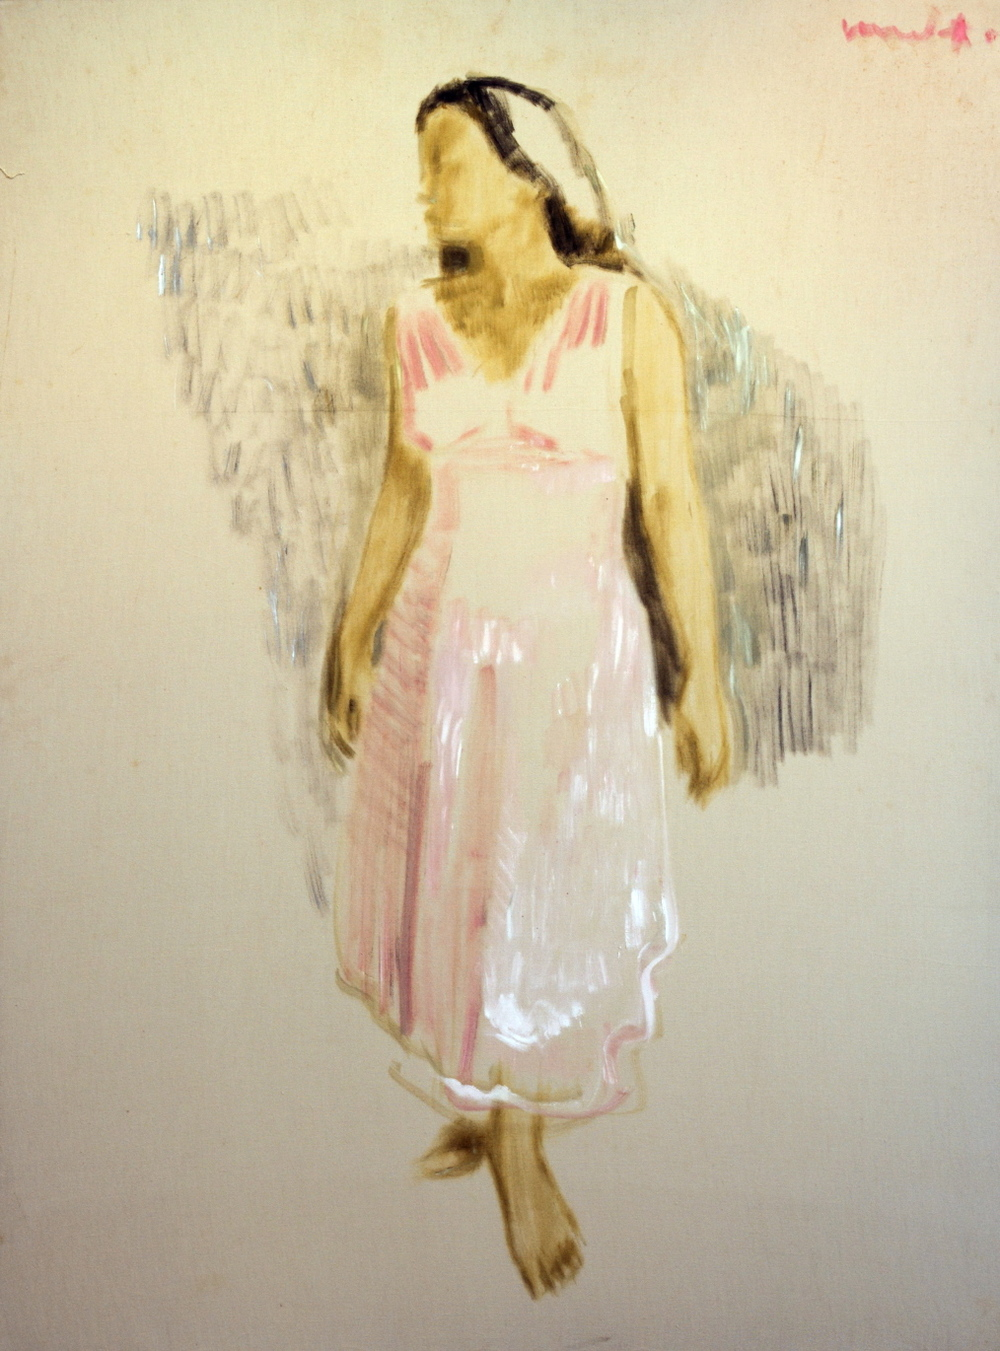 An Angel- Vincent Broustet 2013